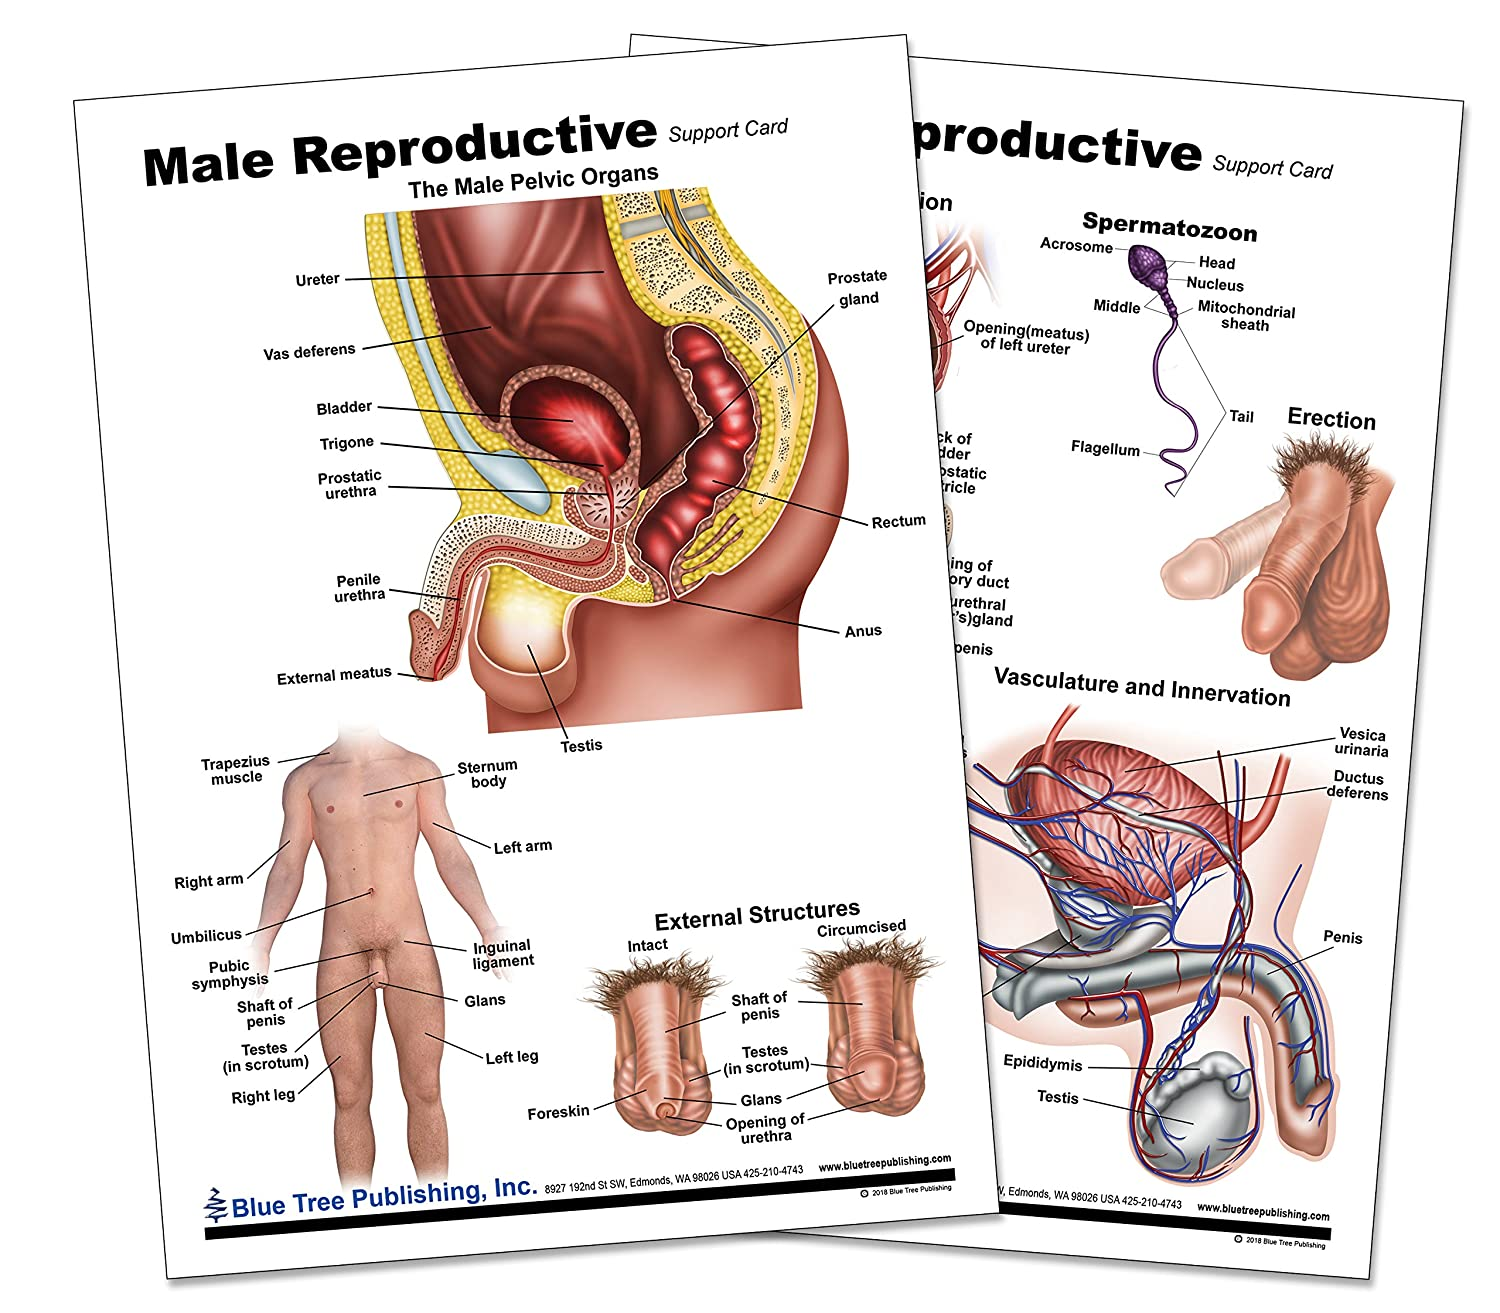 Male Reproductive Anatomy Chart Amazon Industrial Scientific